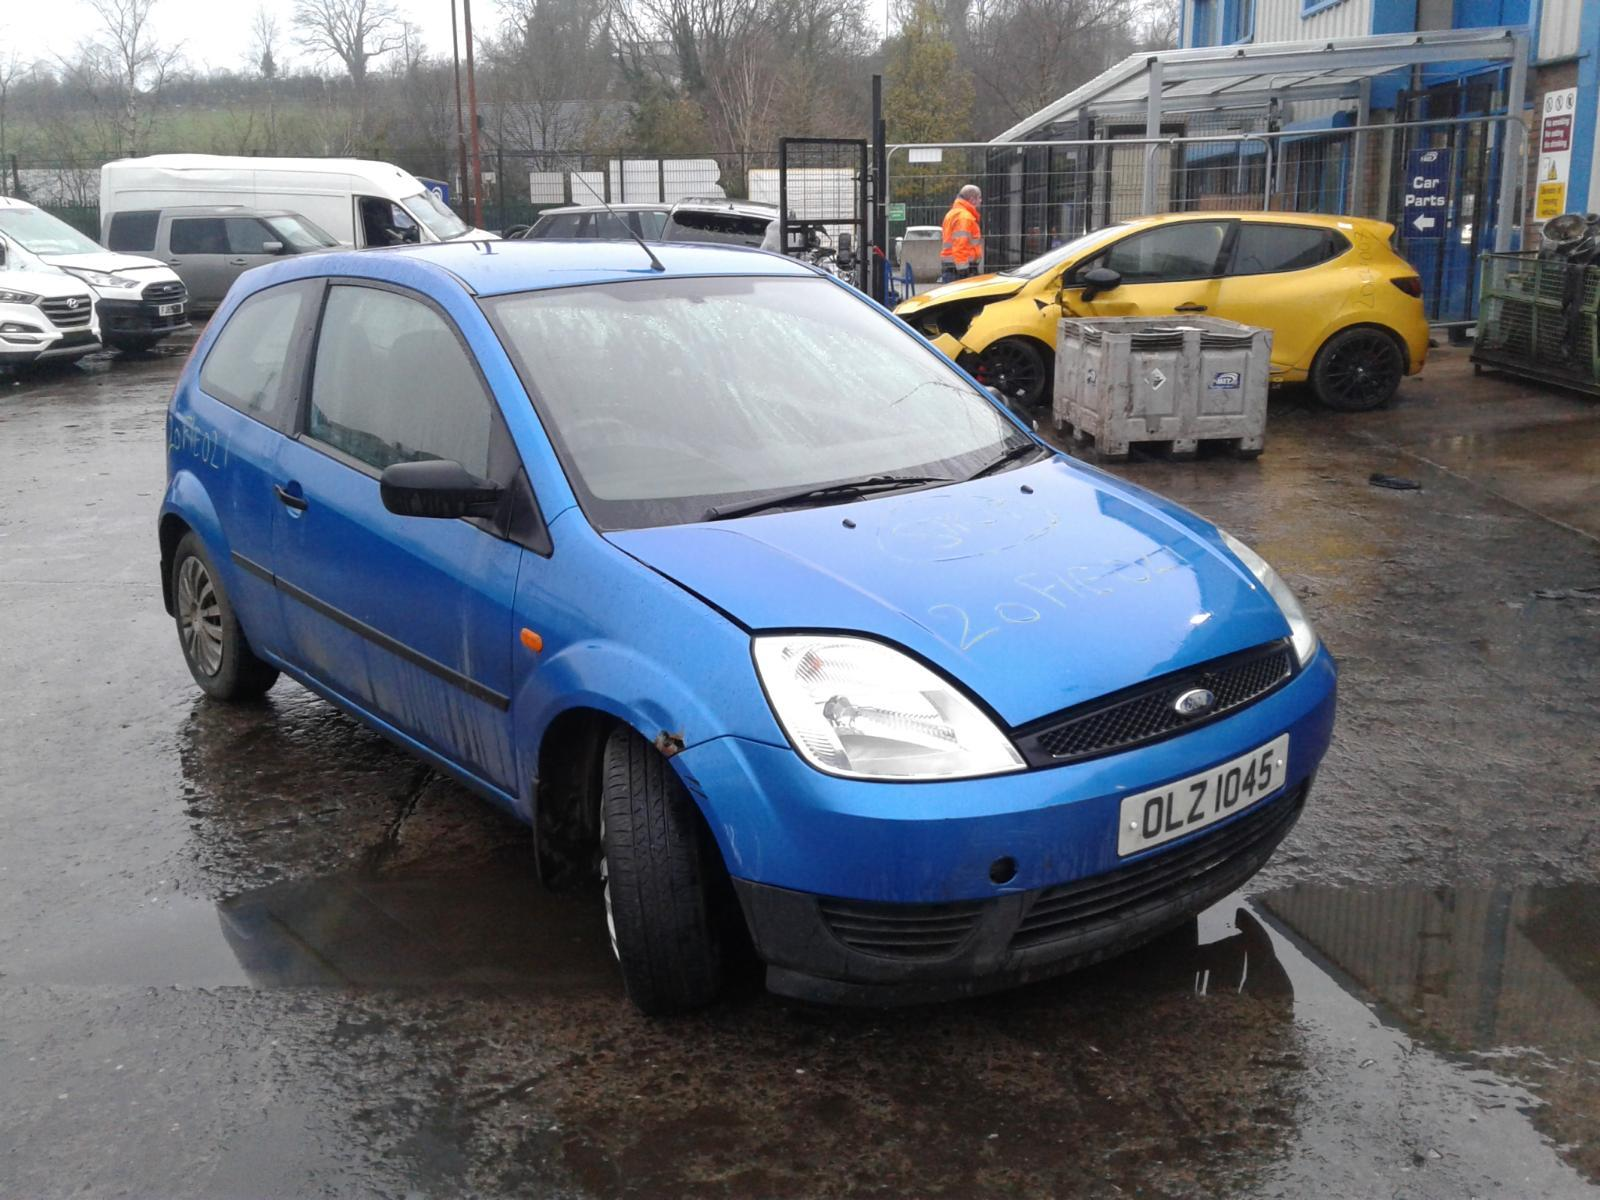 2004 FORD FIESTA Image